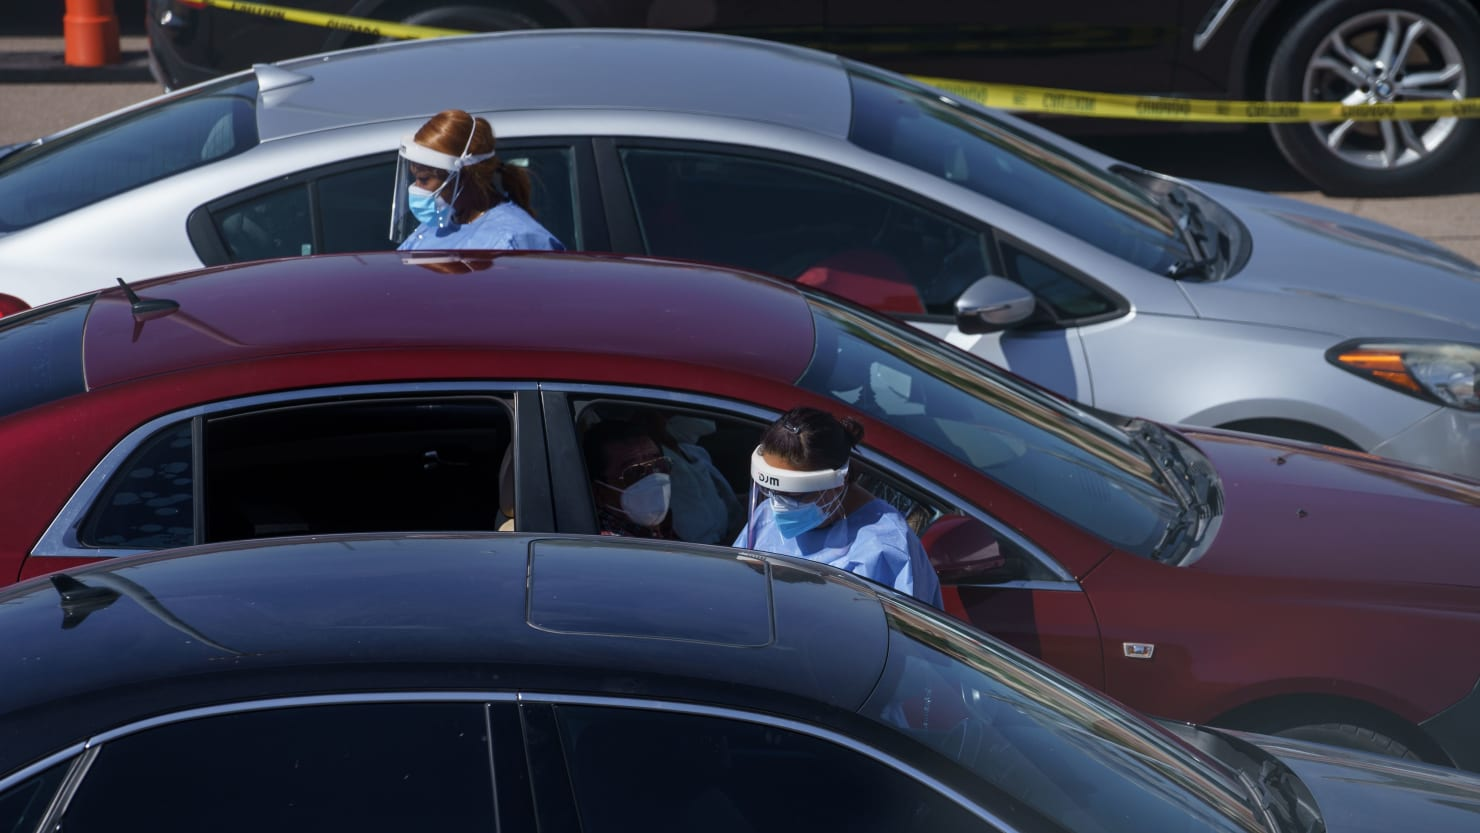 U.S. Had 85,000 New COVID-19 Cases on Friday, Most Since Pandemic Started